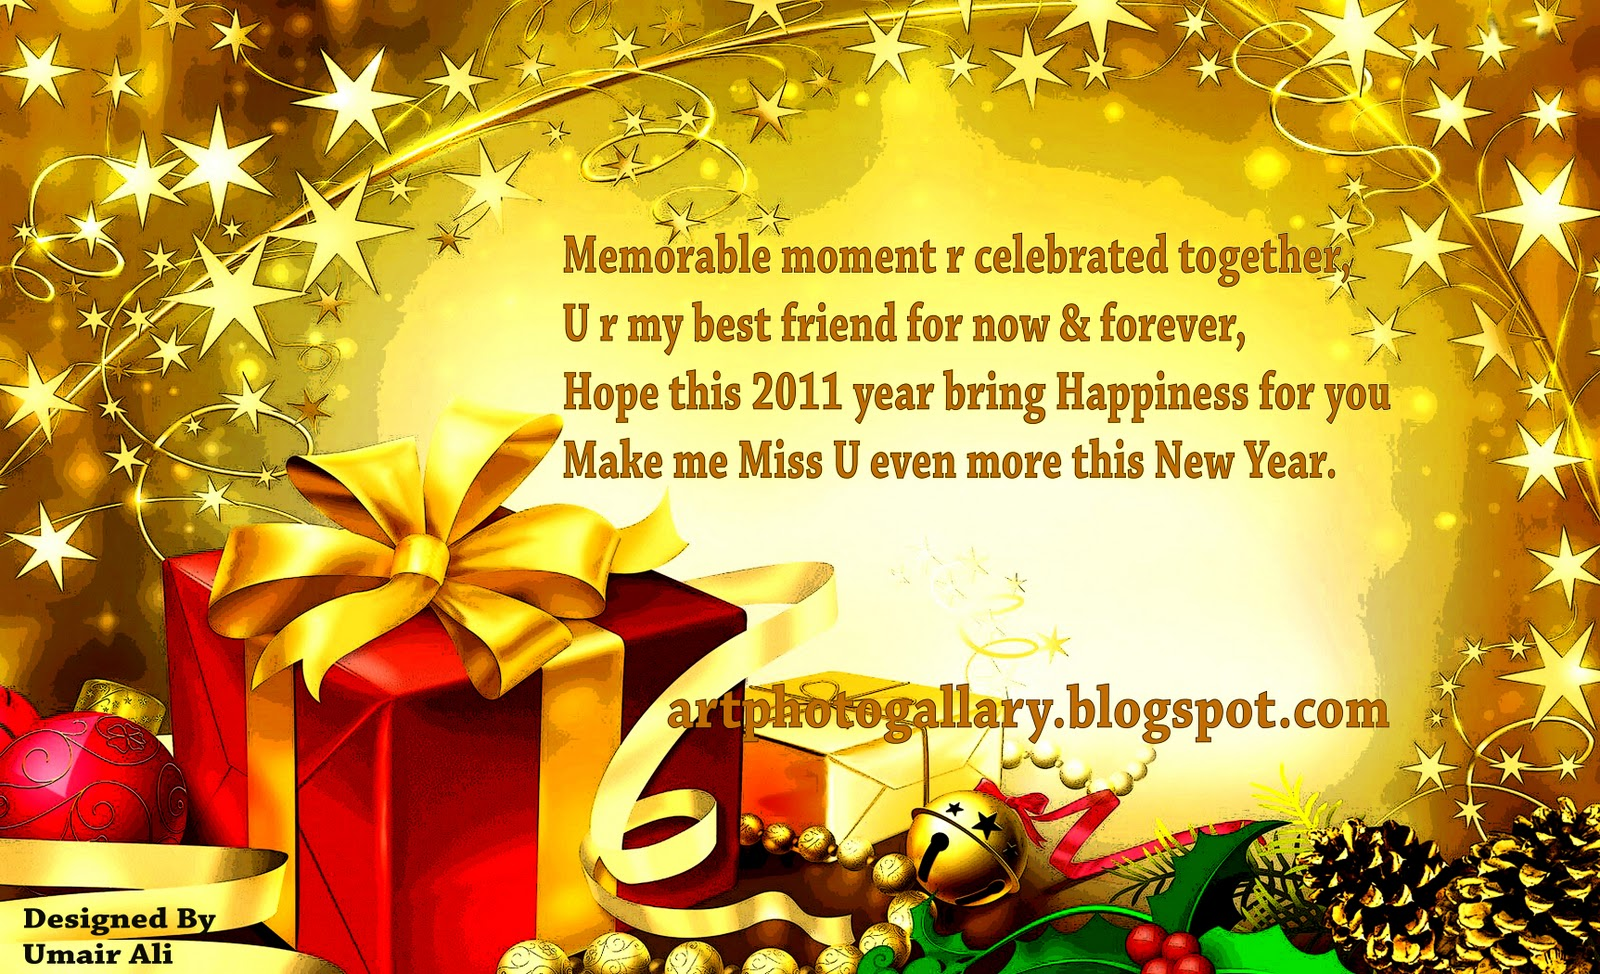 New Year Greeting Cards.6 Best Happy New Year Wallpapers 2014